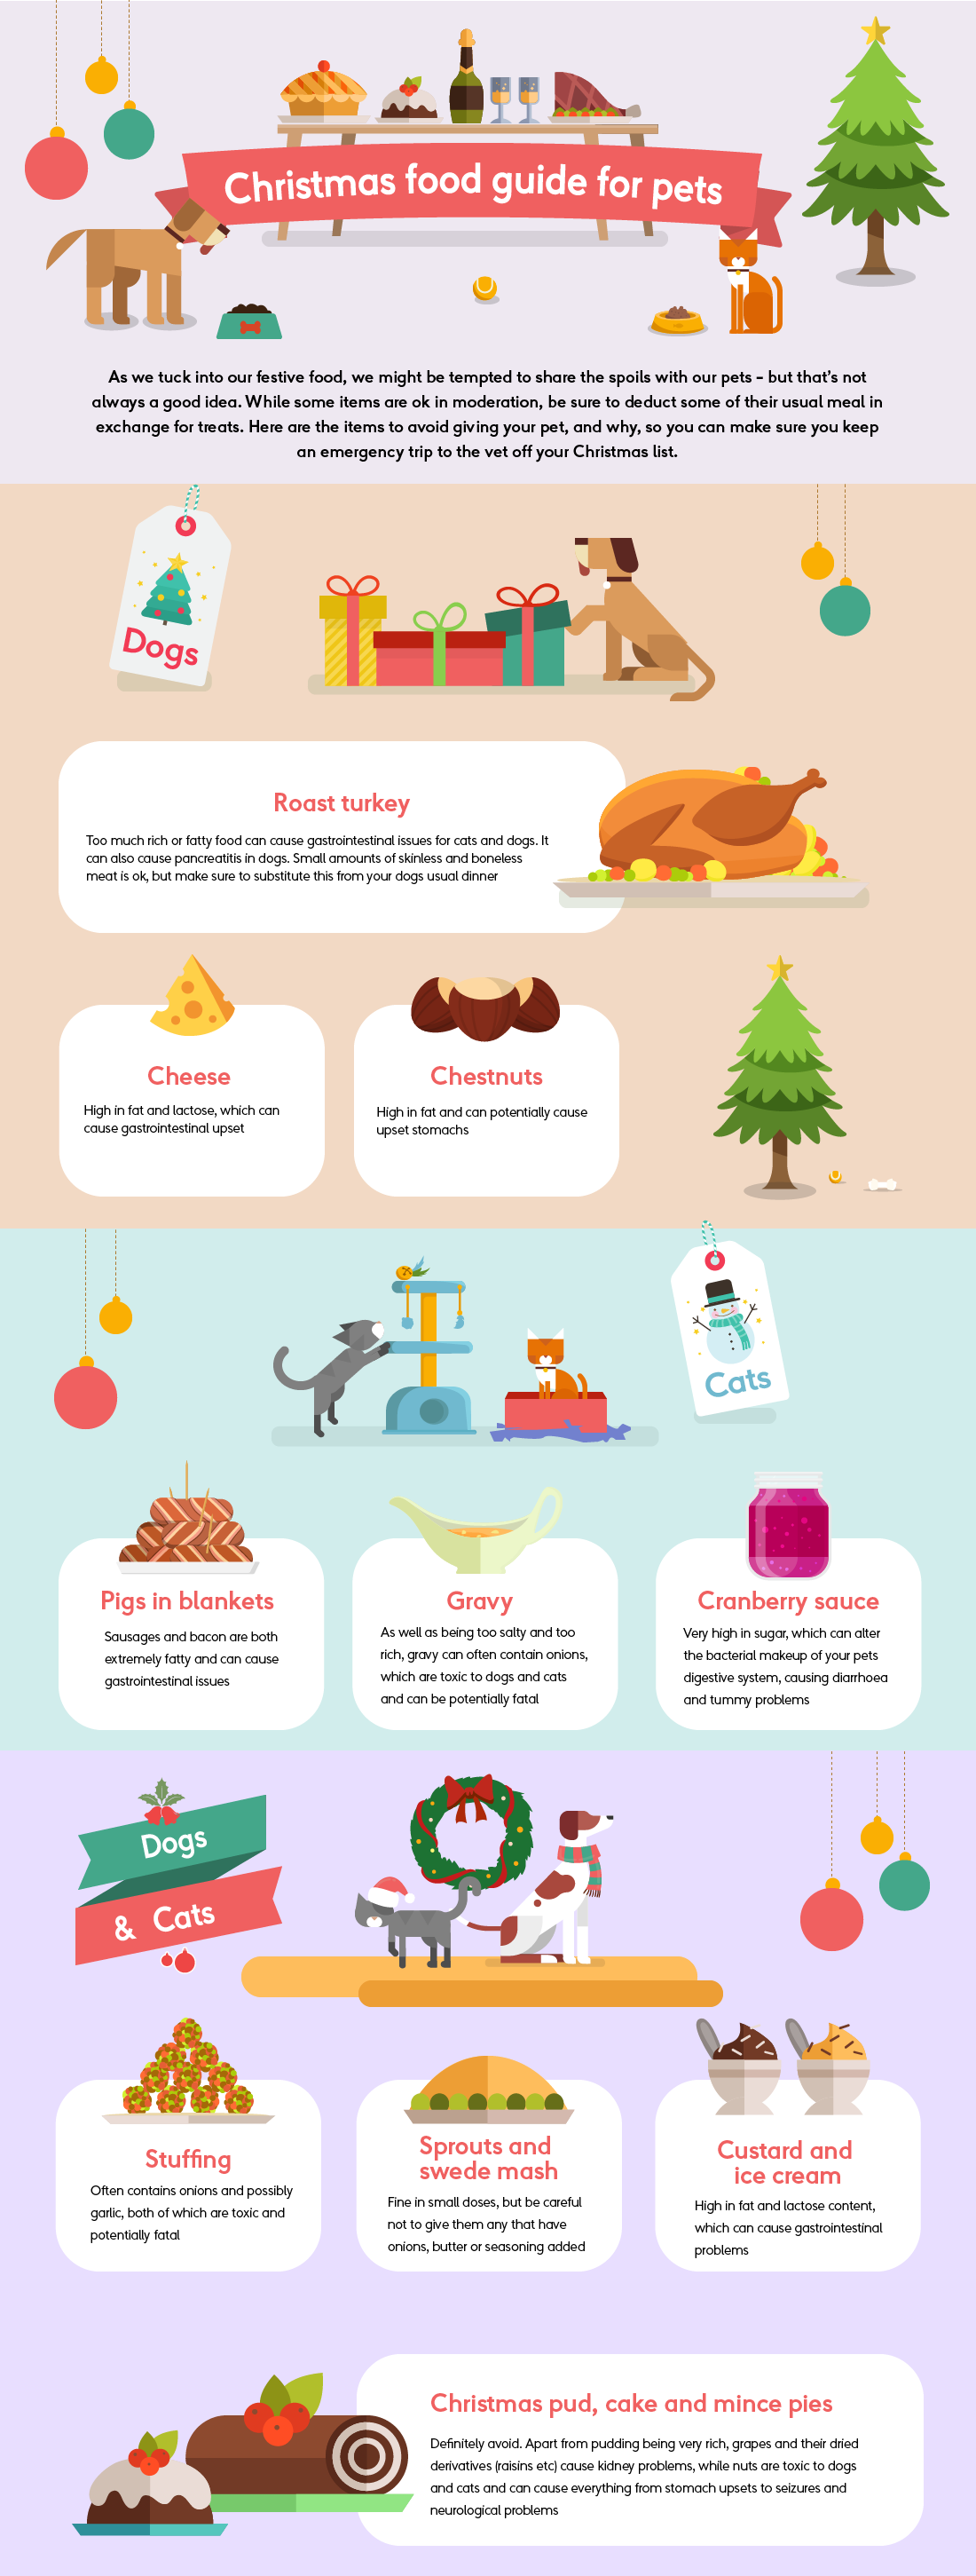 Guide to Christmas Dinner and Pet Safety